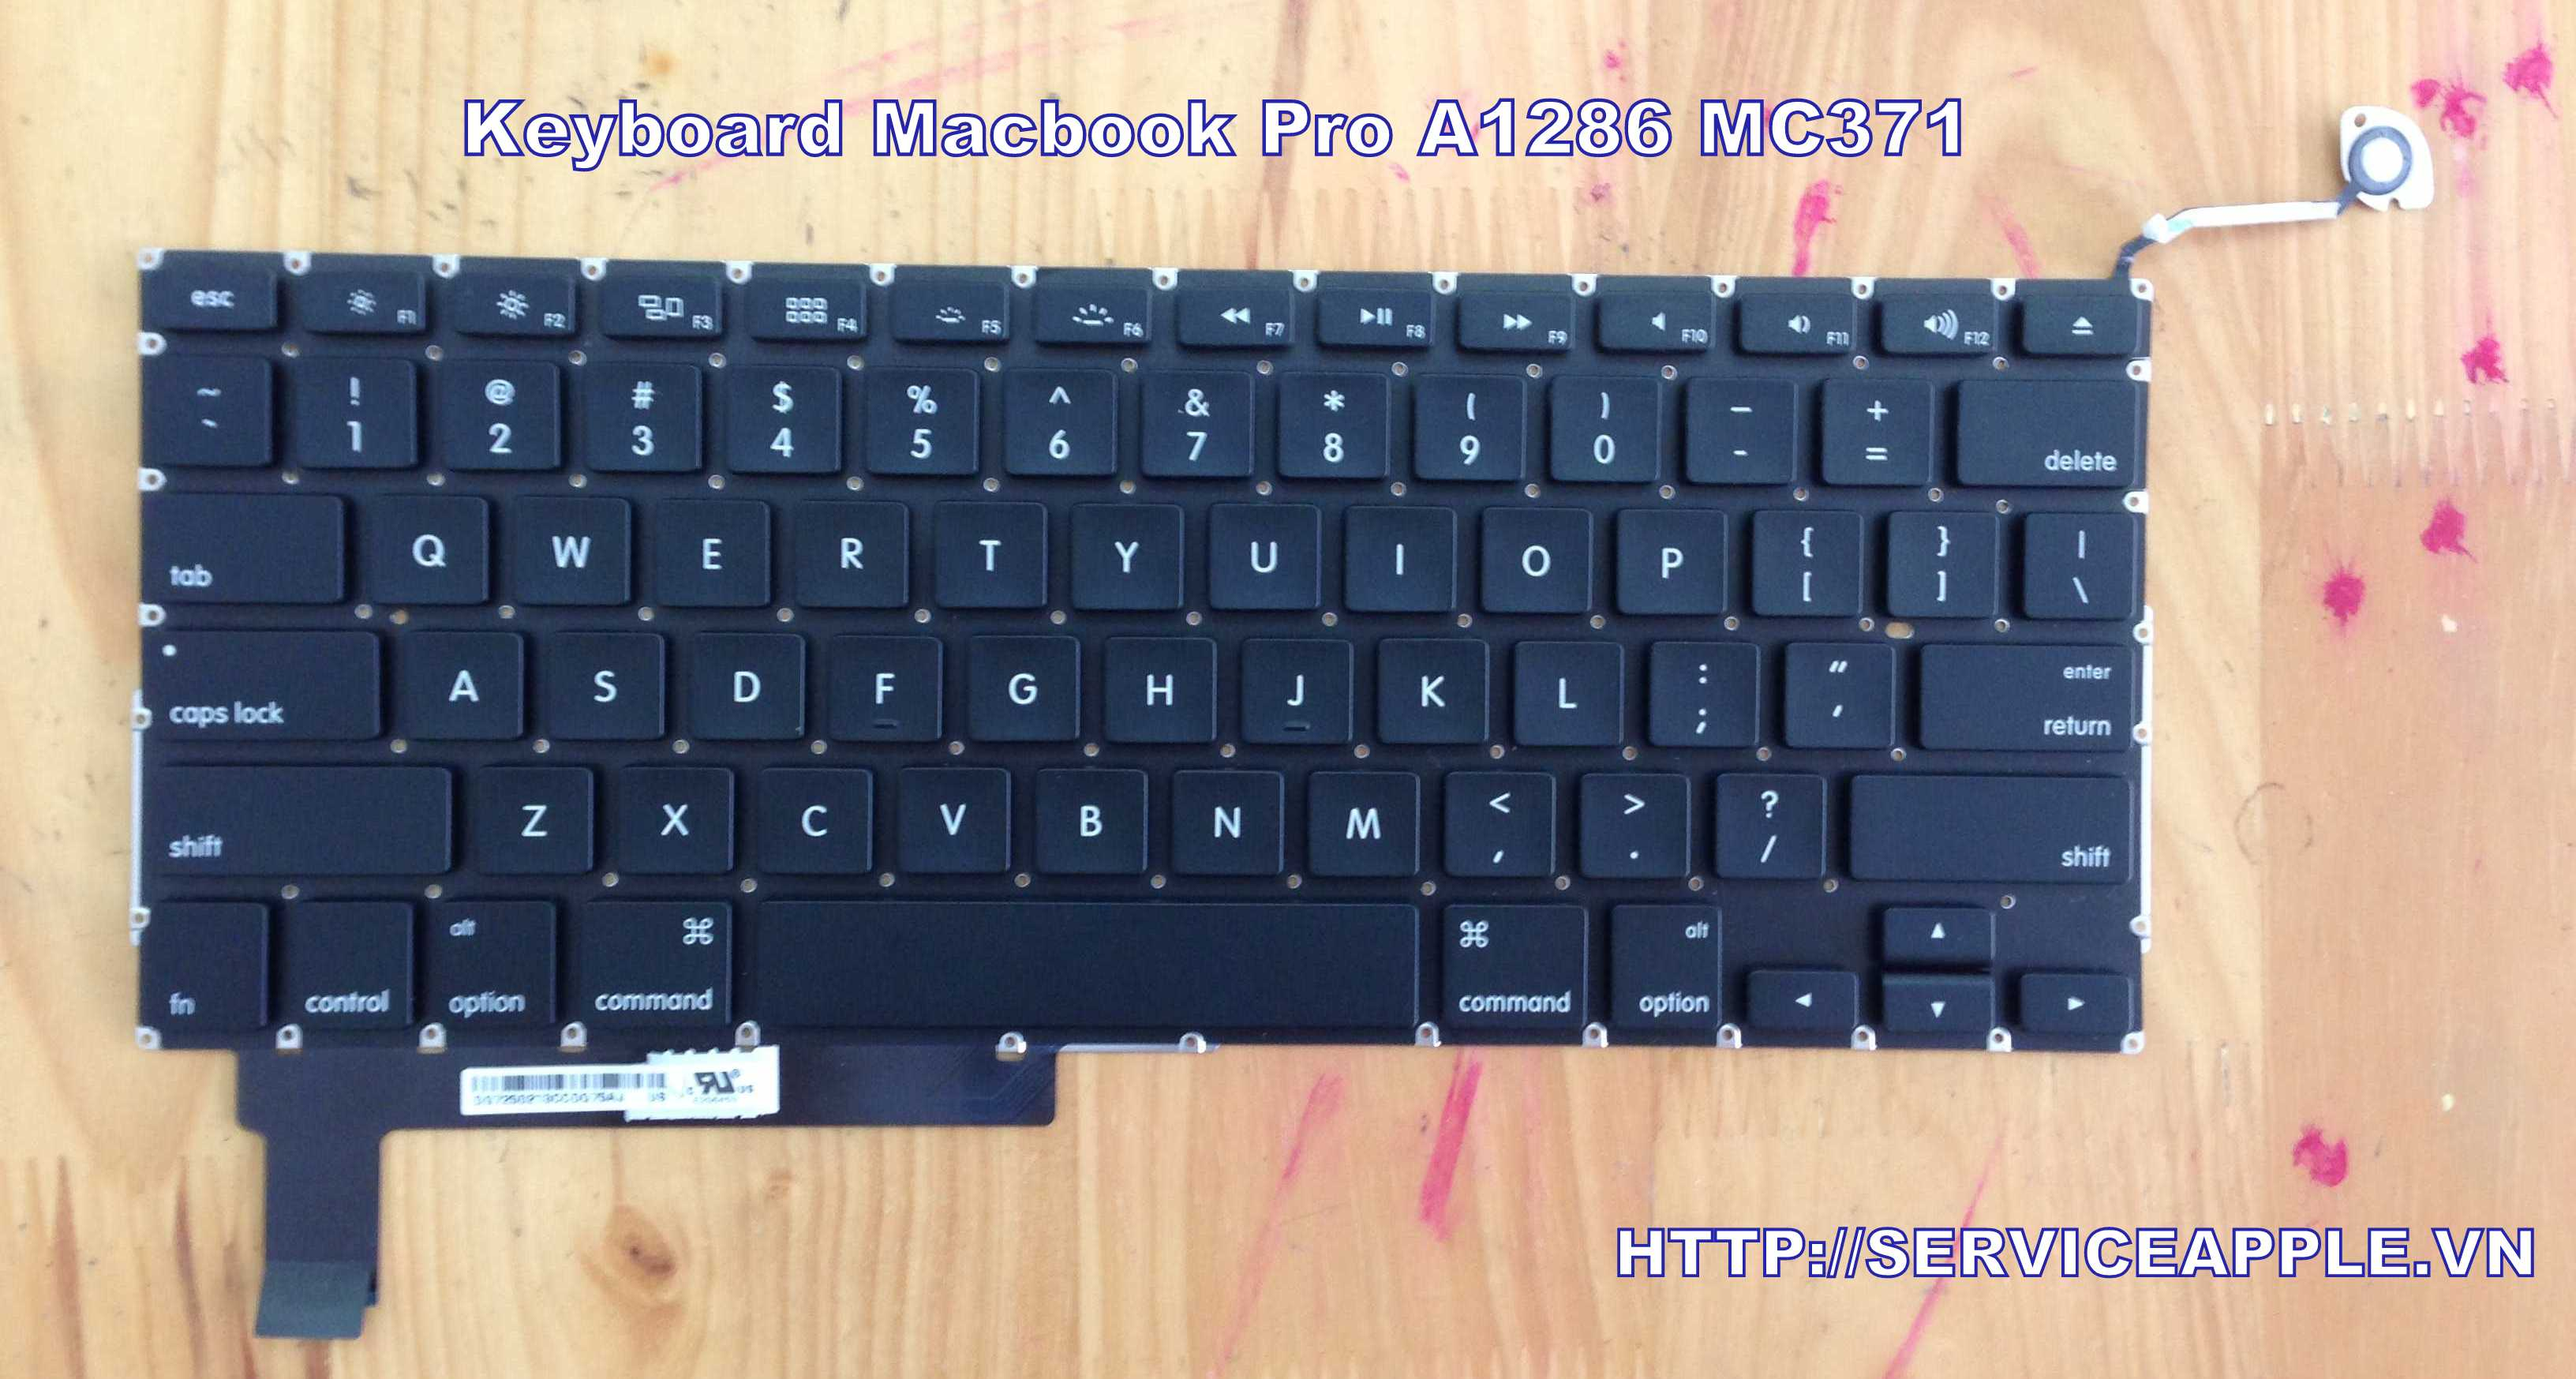 Keyboard Macbook pro a1286.JPG